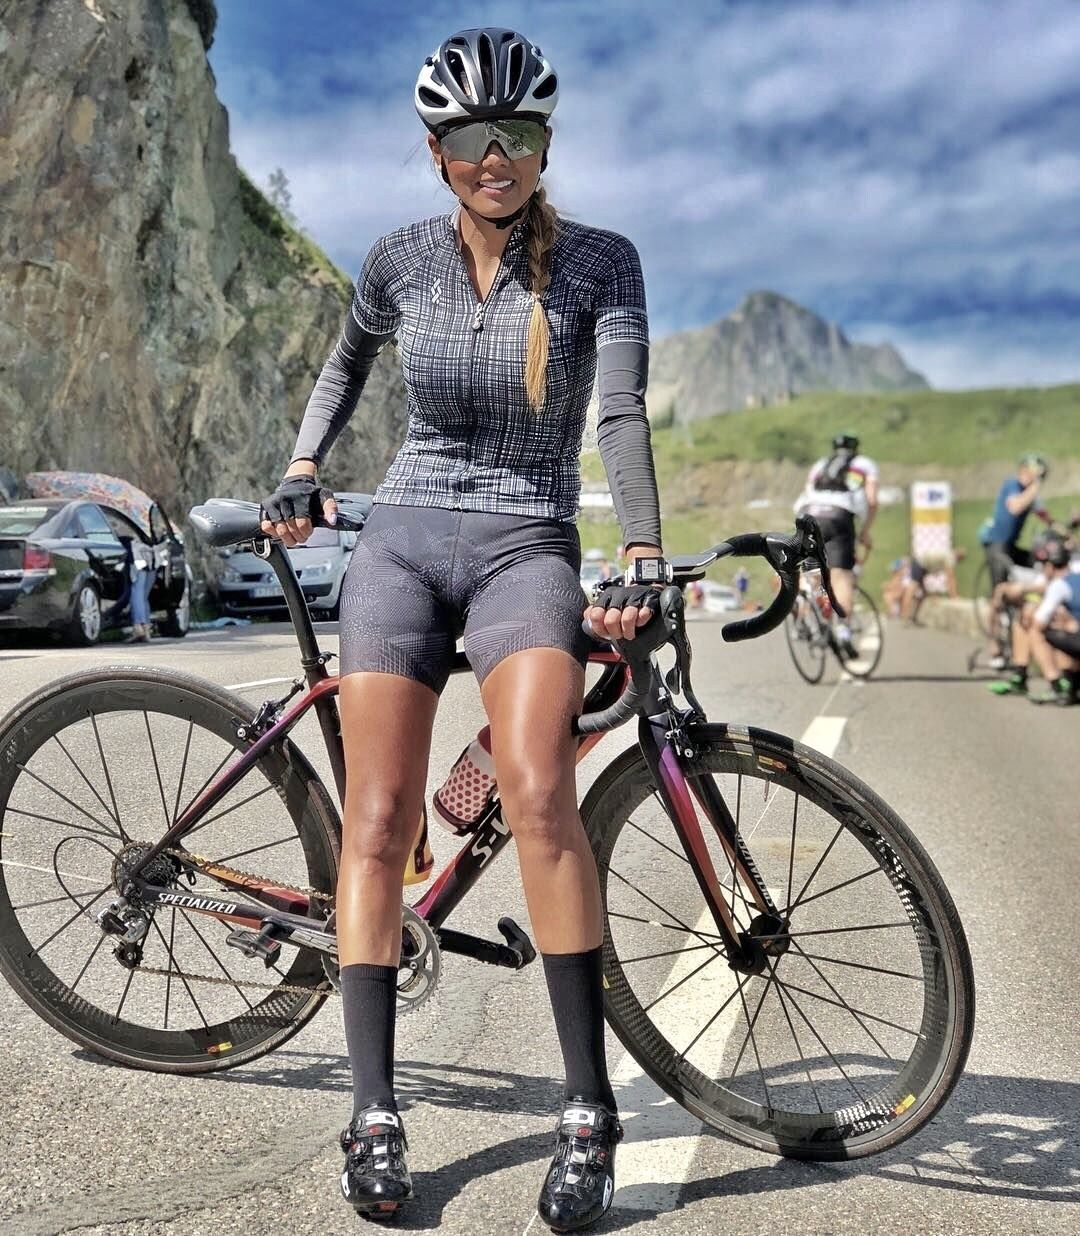 Curves And Lines Women And Bikes In 2020 Female Cyclist Cycling Women Bicycle Women